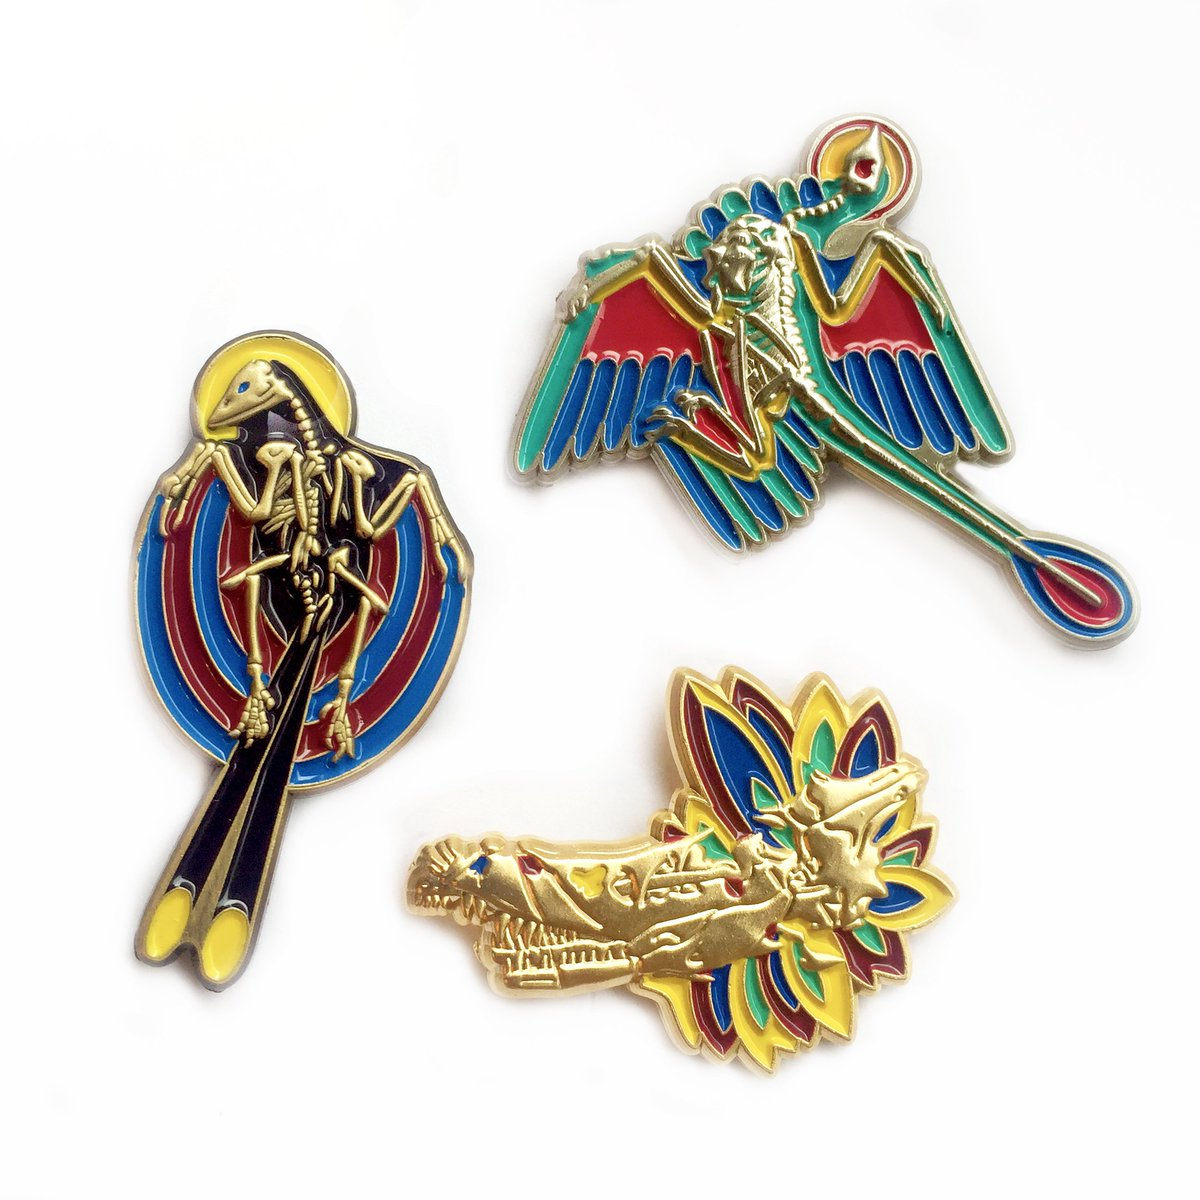 The 3D fossil pins arrived!  https:// greerstothers.storenvy.com/products/25369 818-3d-fossil-pins &nbsp; … <br>http://pic.twitter.com/SYRtd2Q3d6